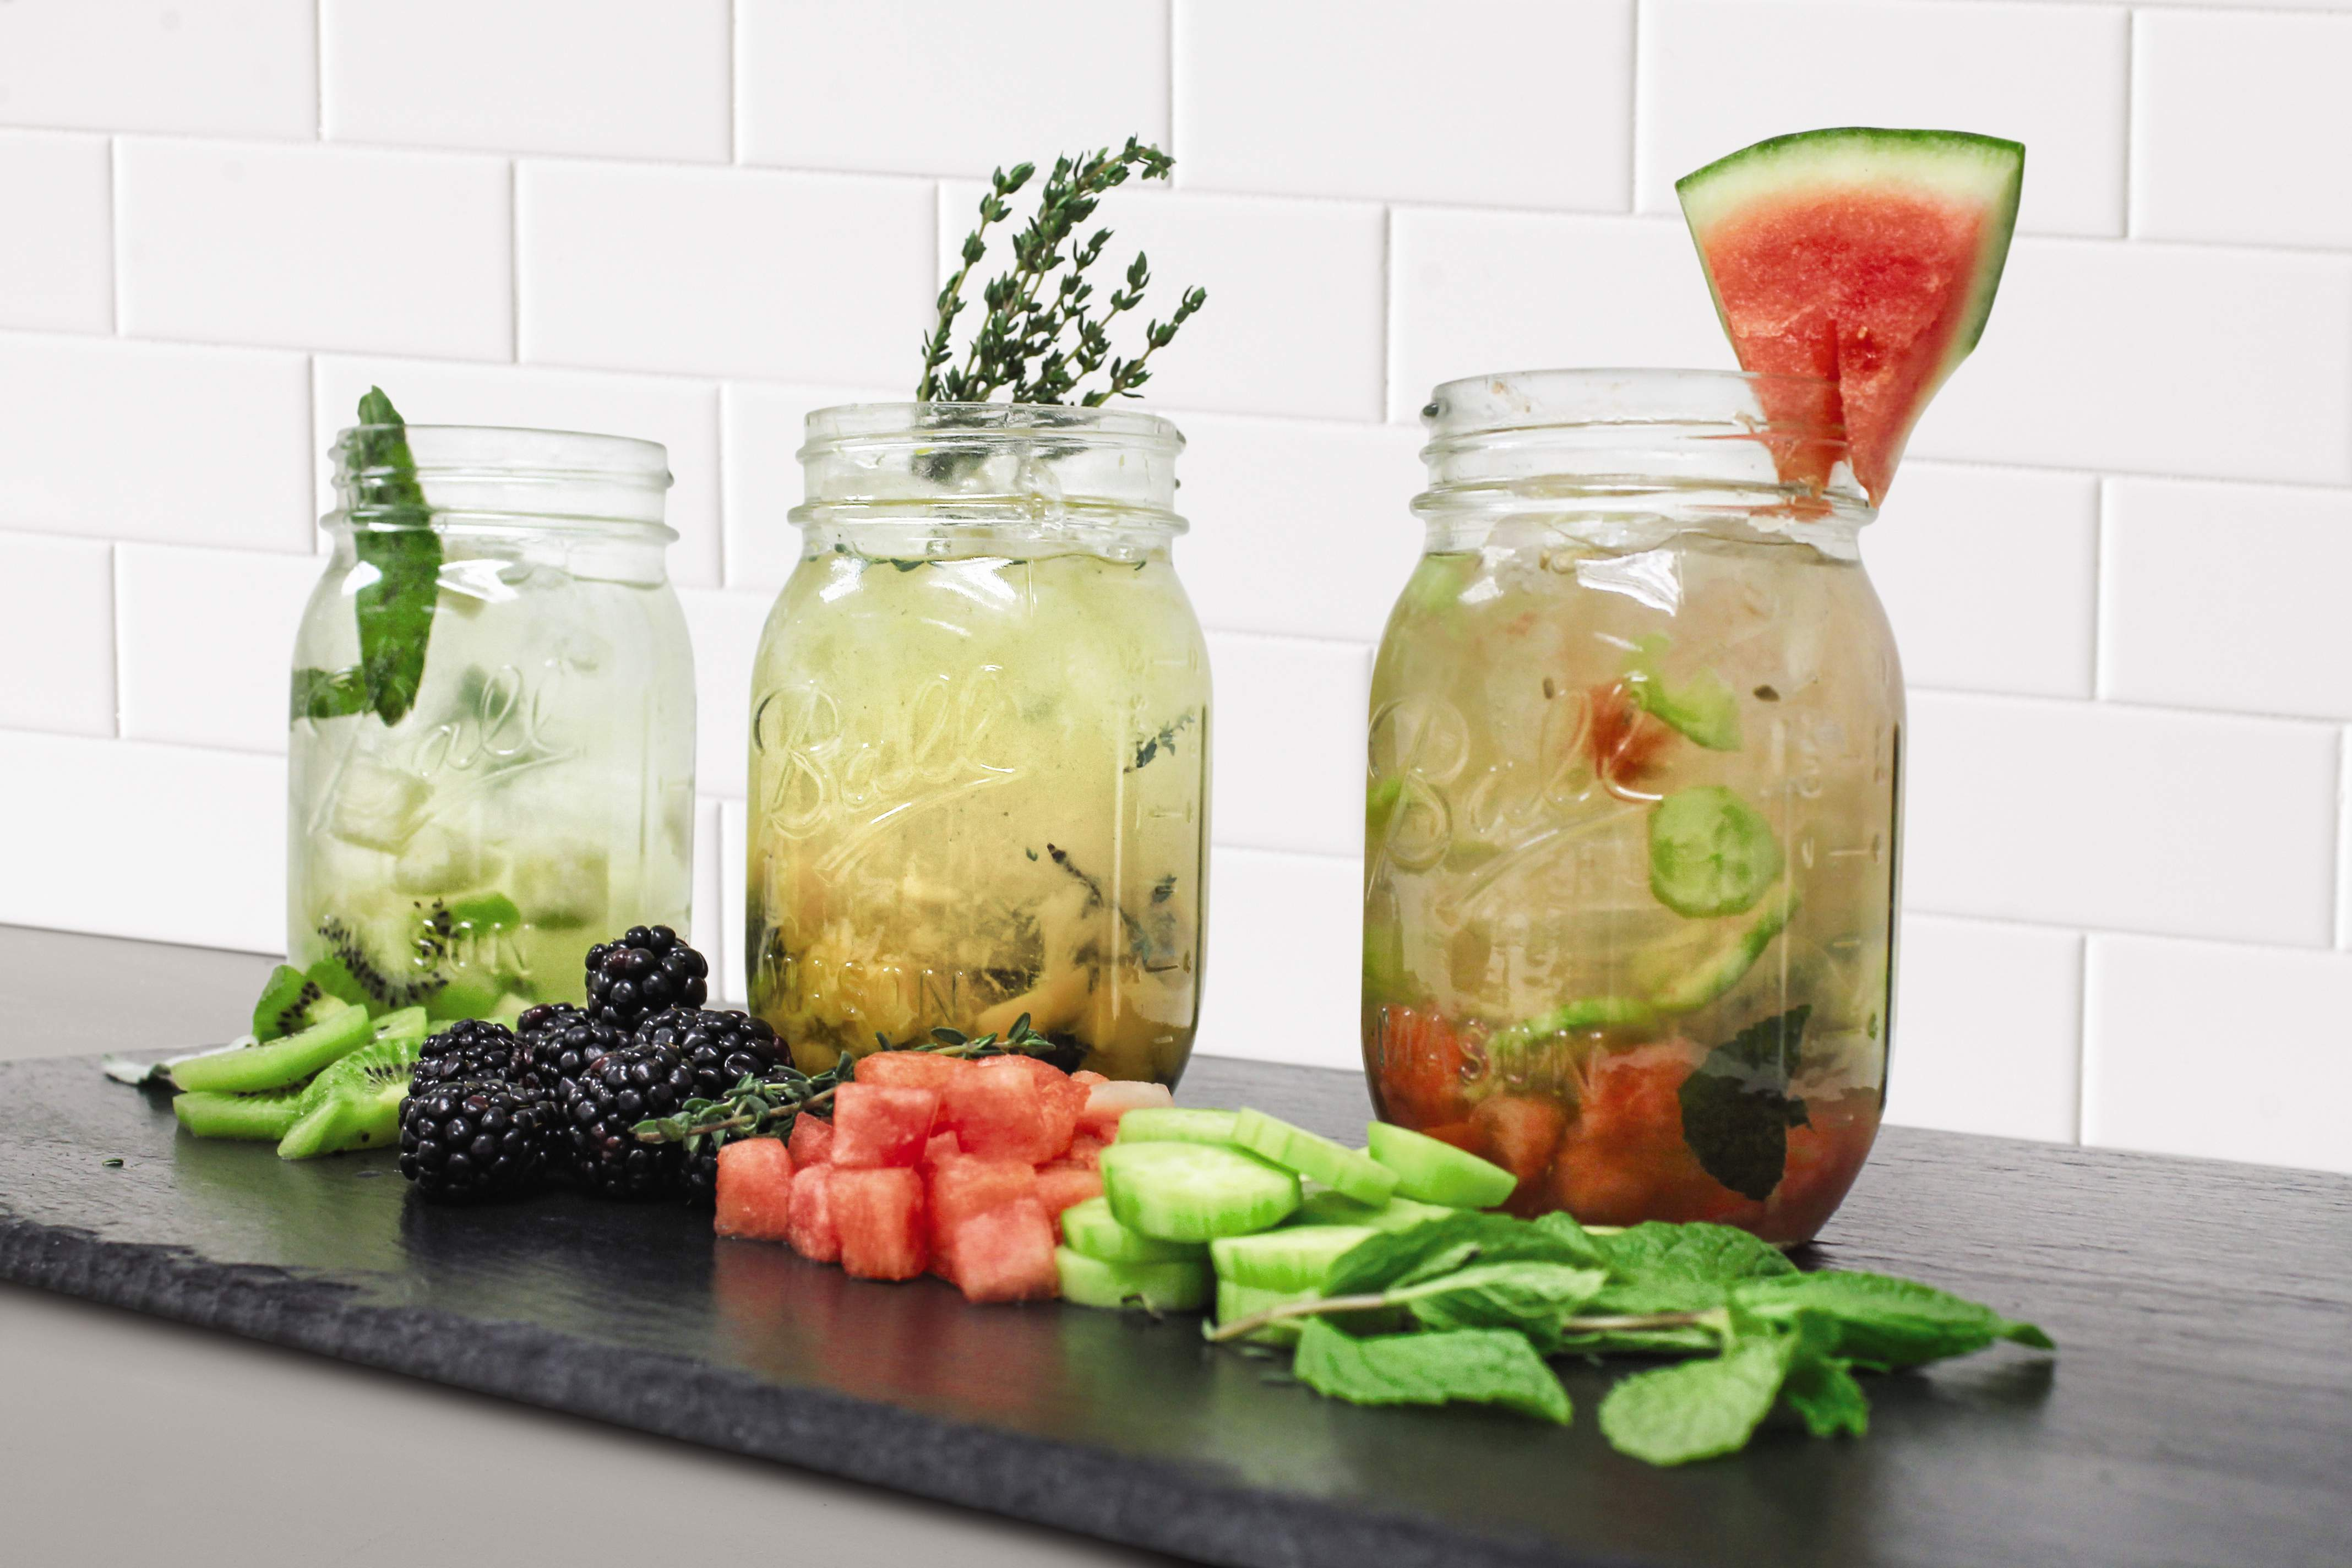 Fruit infused waters with garnishes.